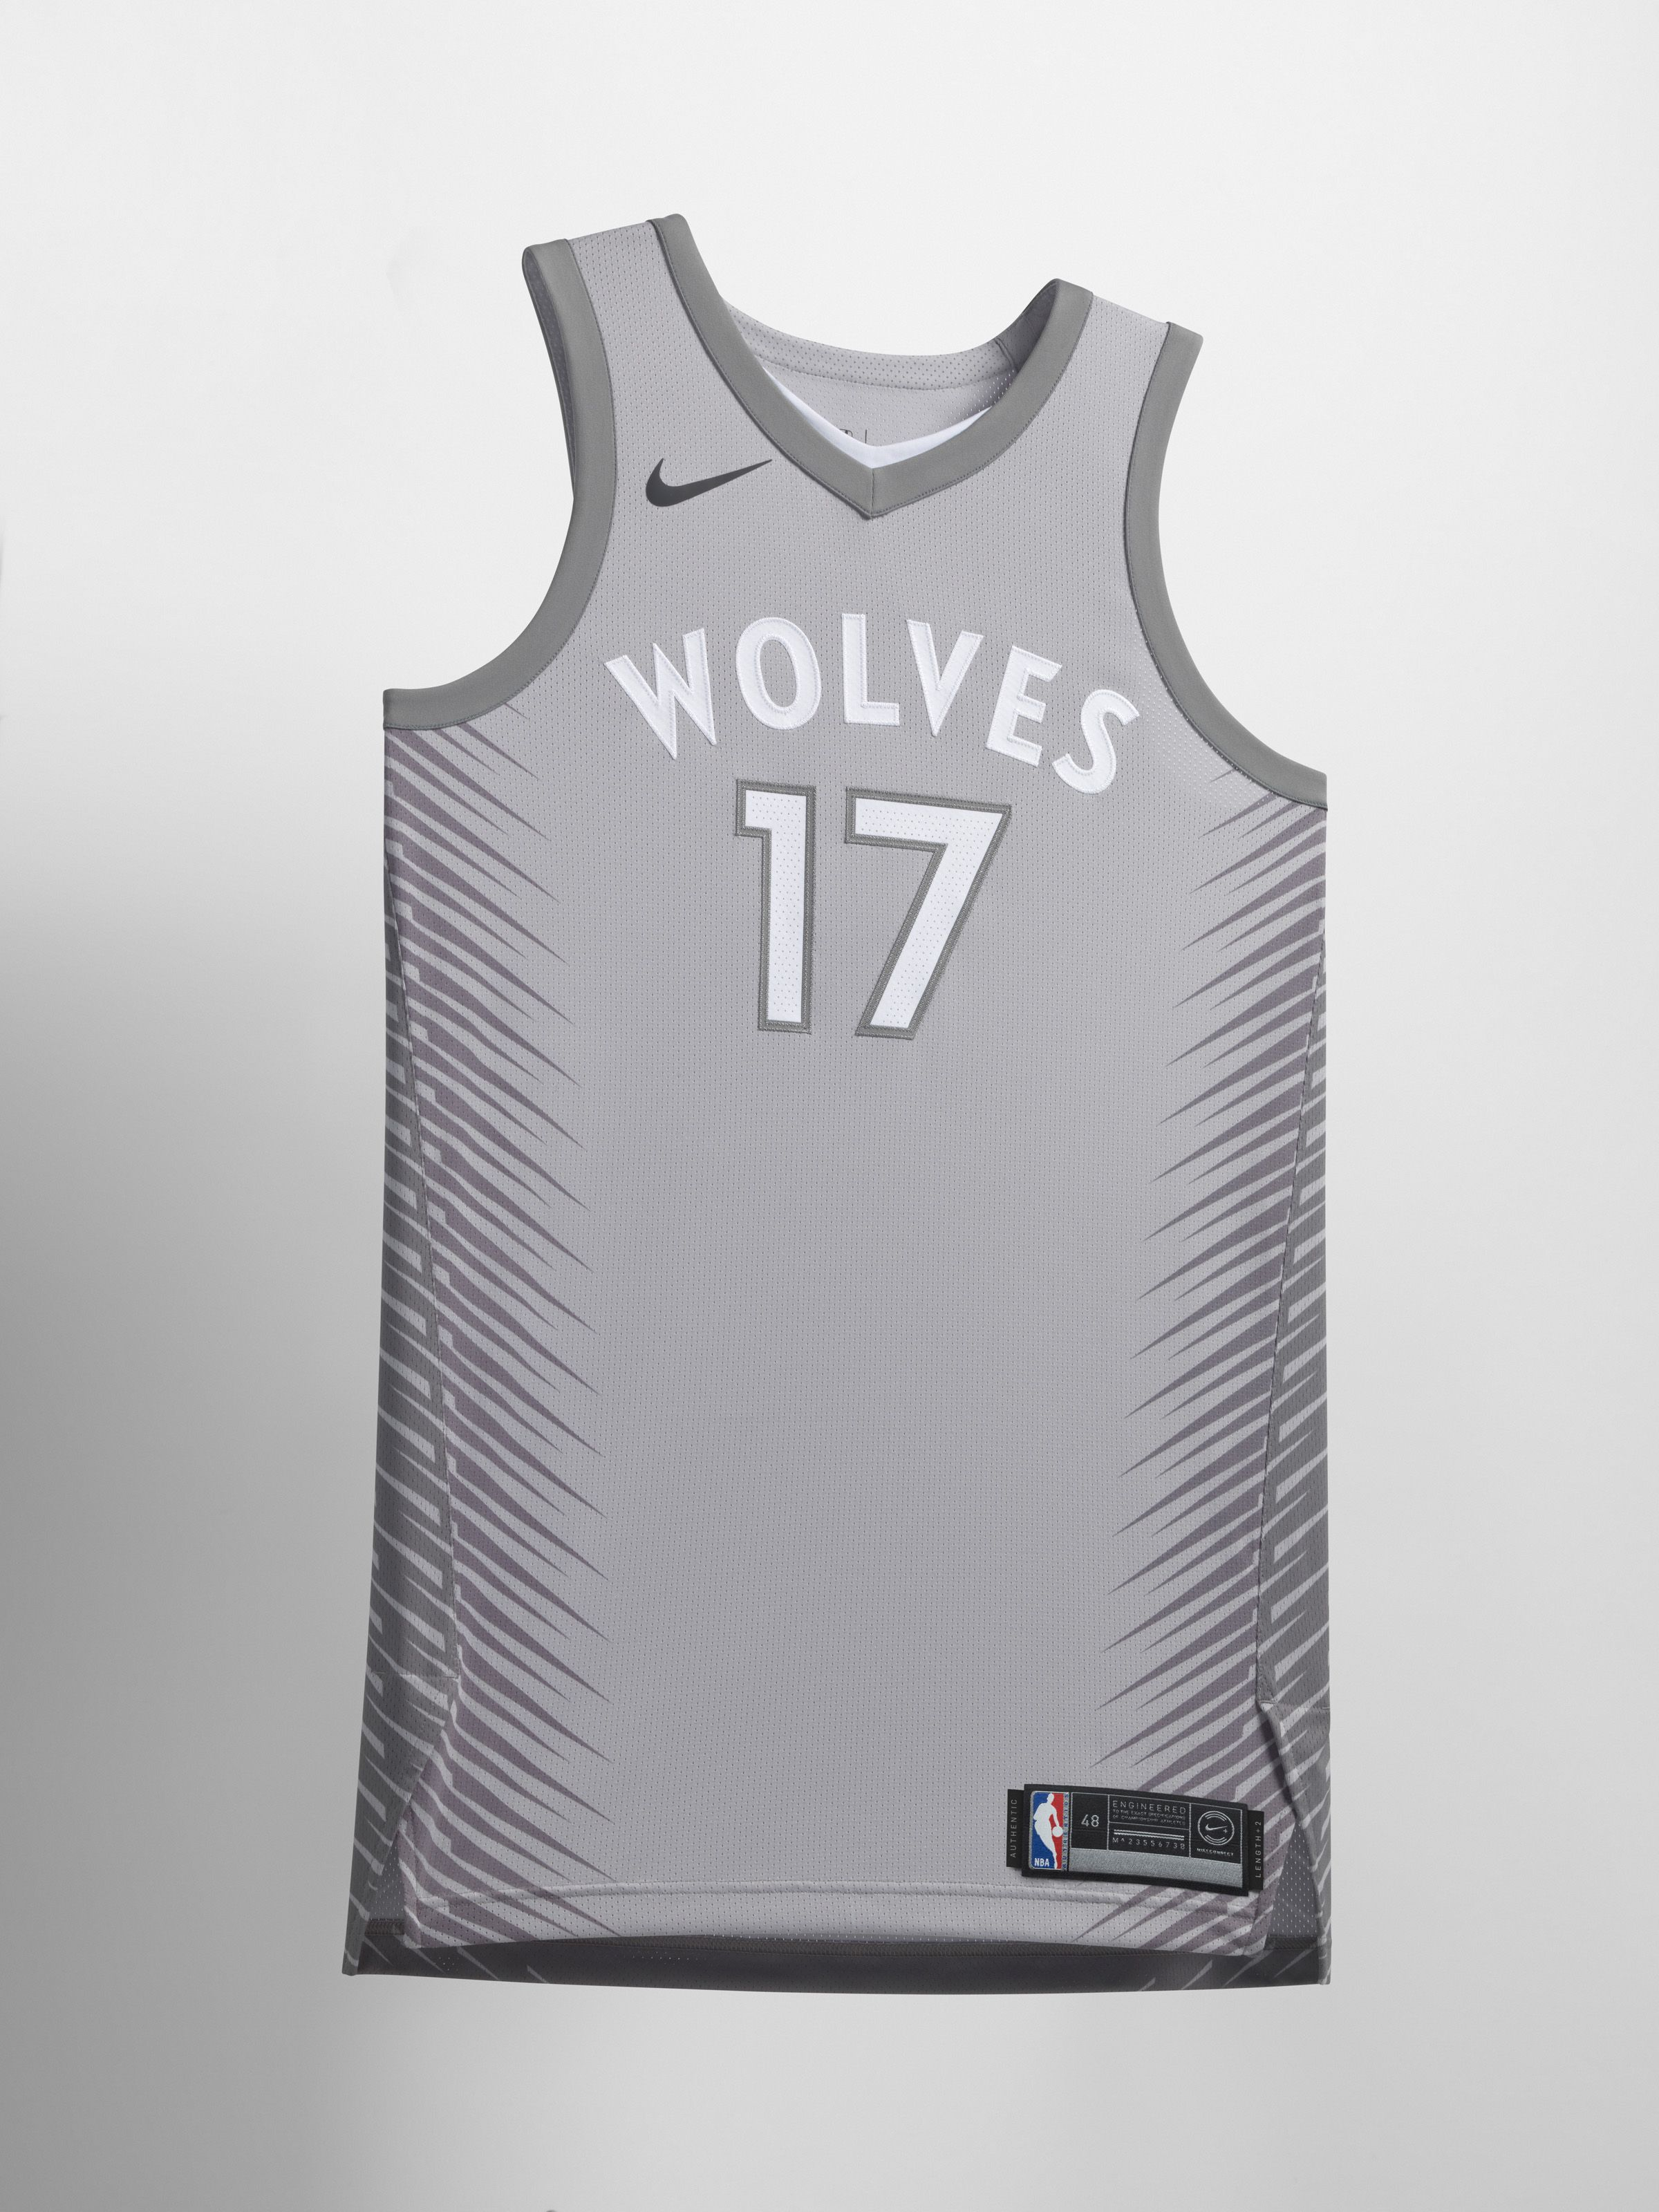 new arrival 1e8a8 f4751 minnesota timberwolves gray jersey